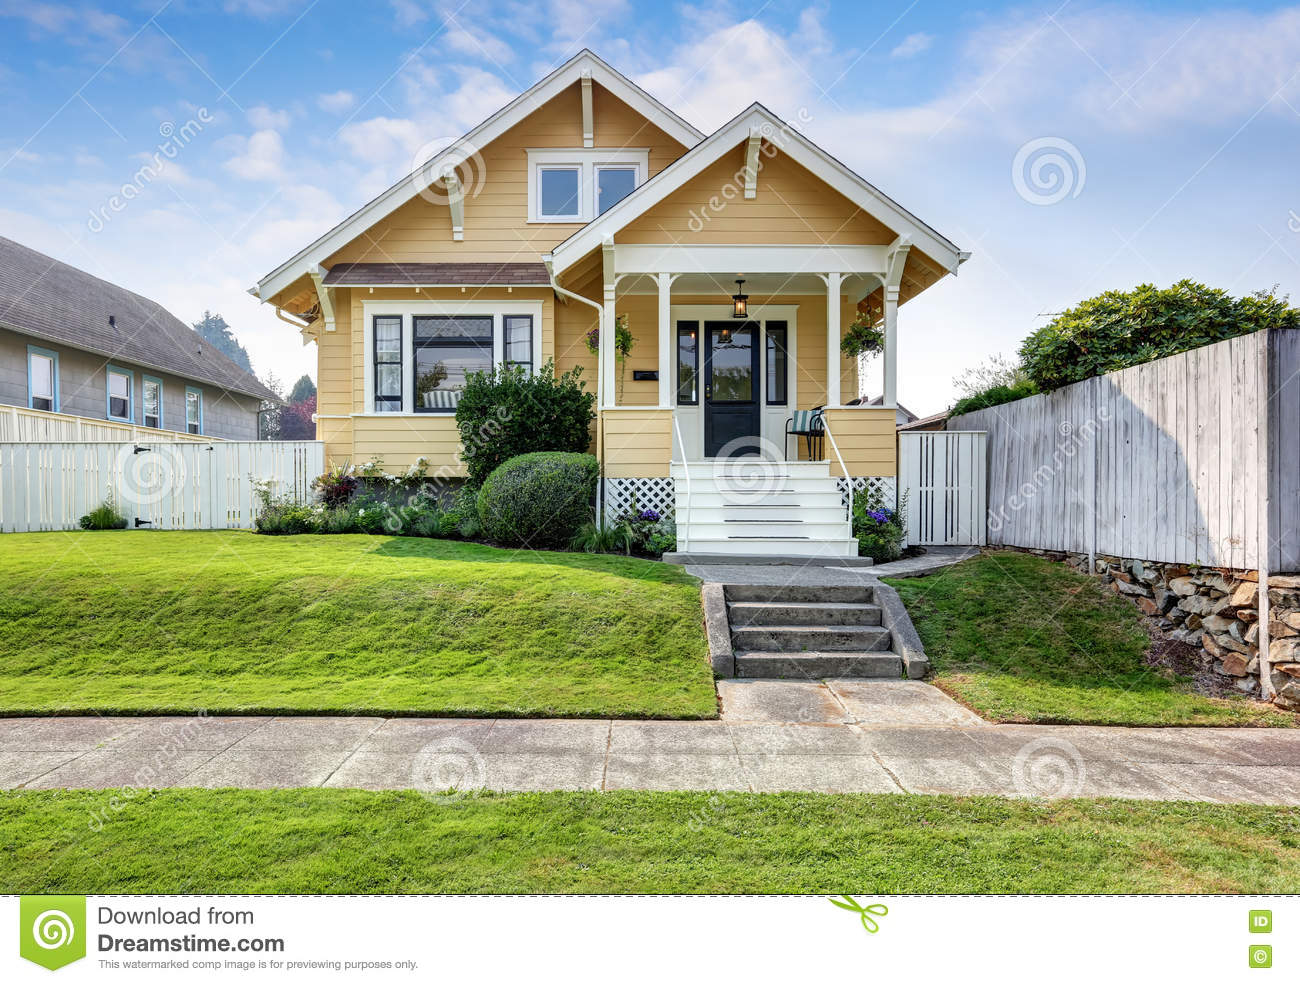 American craftsman home with yellow exterior paint stock for American craftsman homes